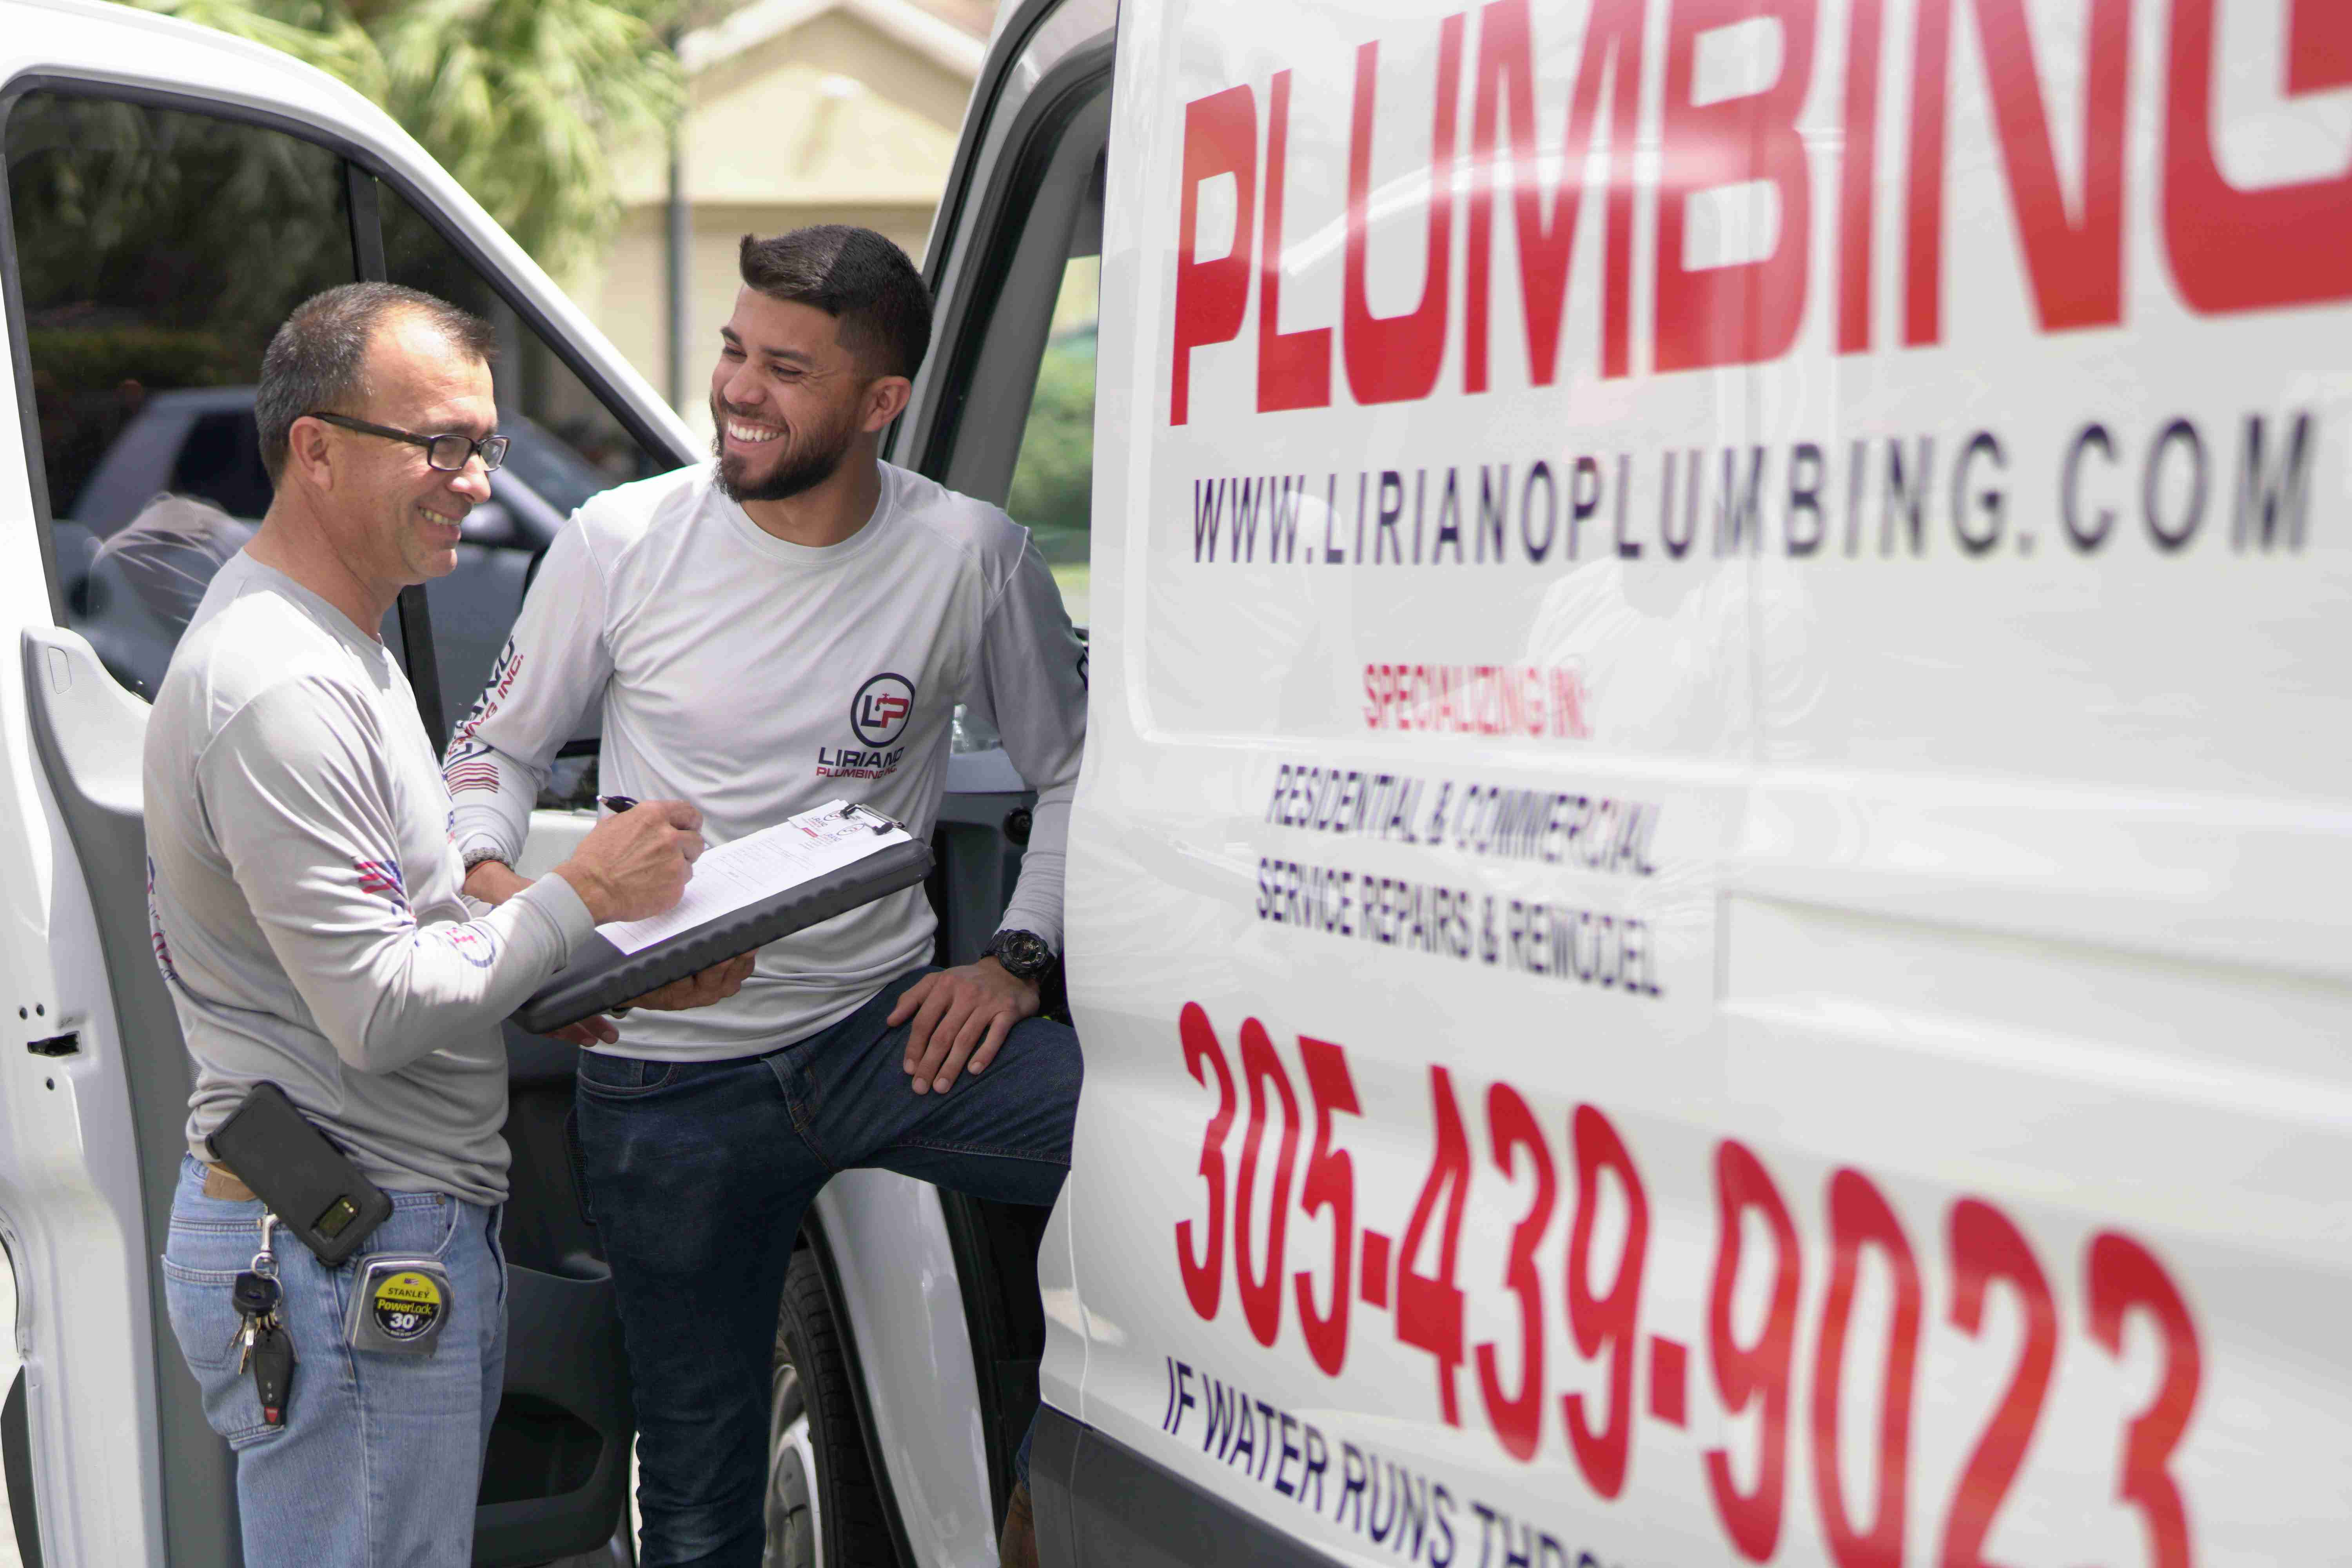 Local Plumber Near Me 24 7 Plumbing Sevices Miami